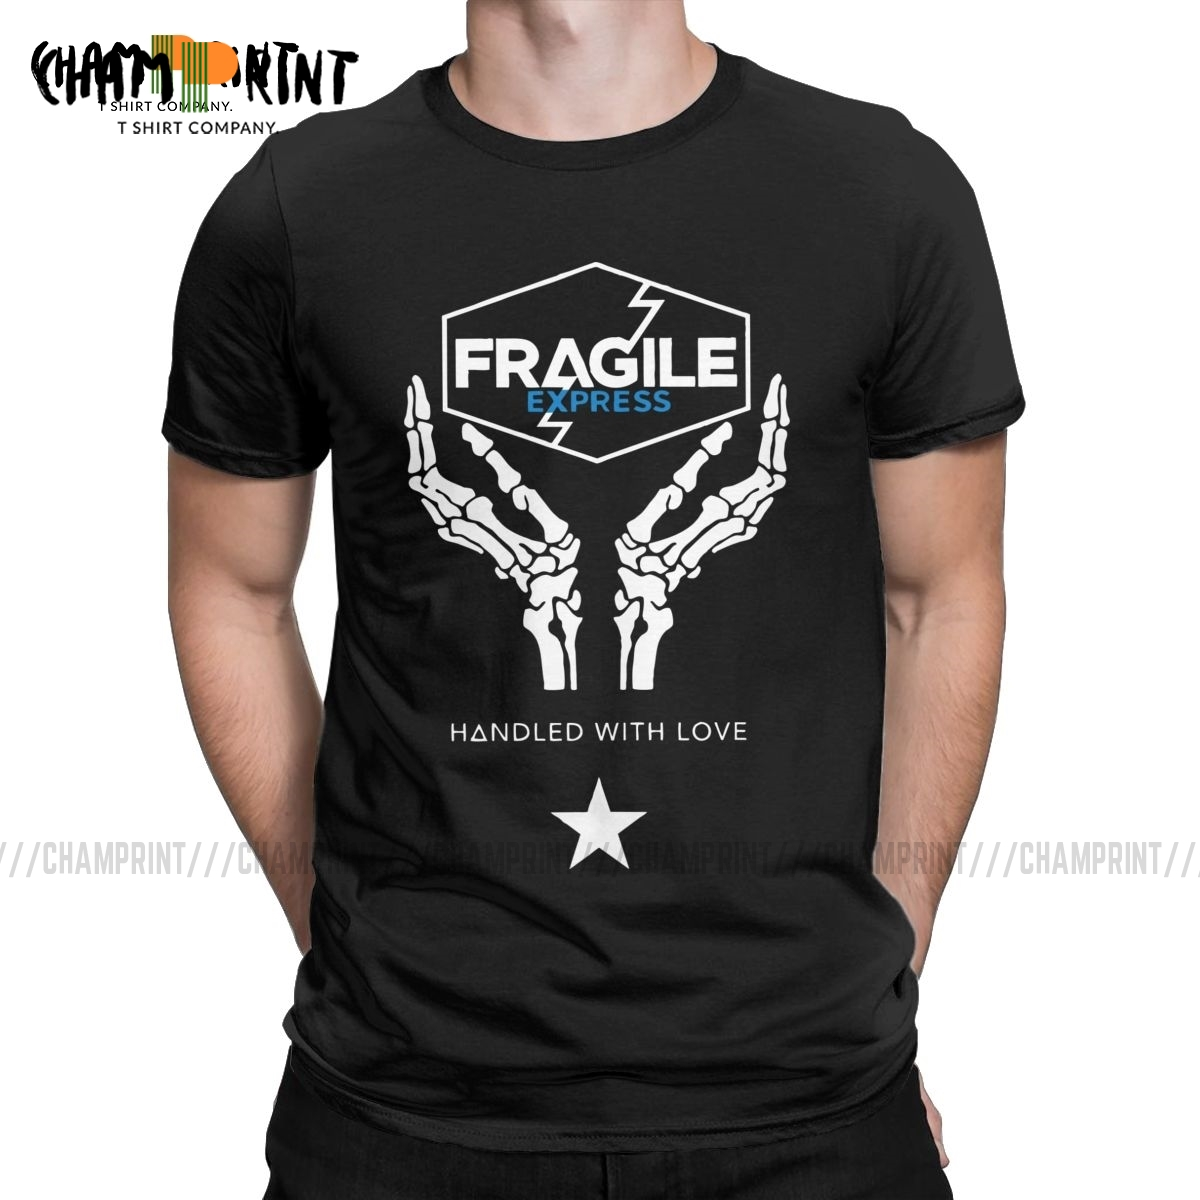 Death Stranding Fragile Express Men's T Shirts Kojima Productions Novelty Tees Short Sleeve T-Shirts Birthday Gift Clothes